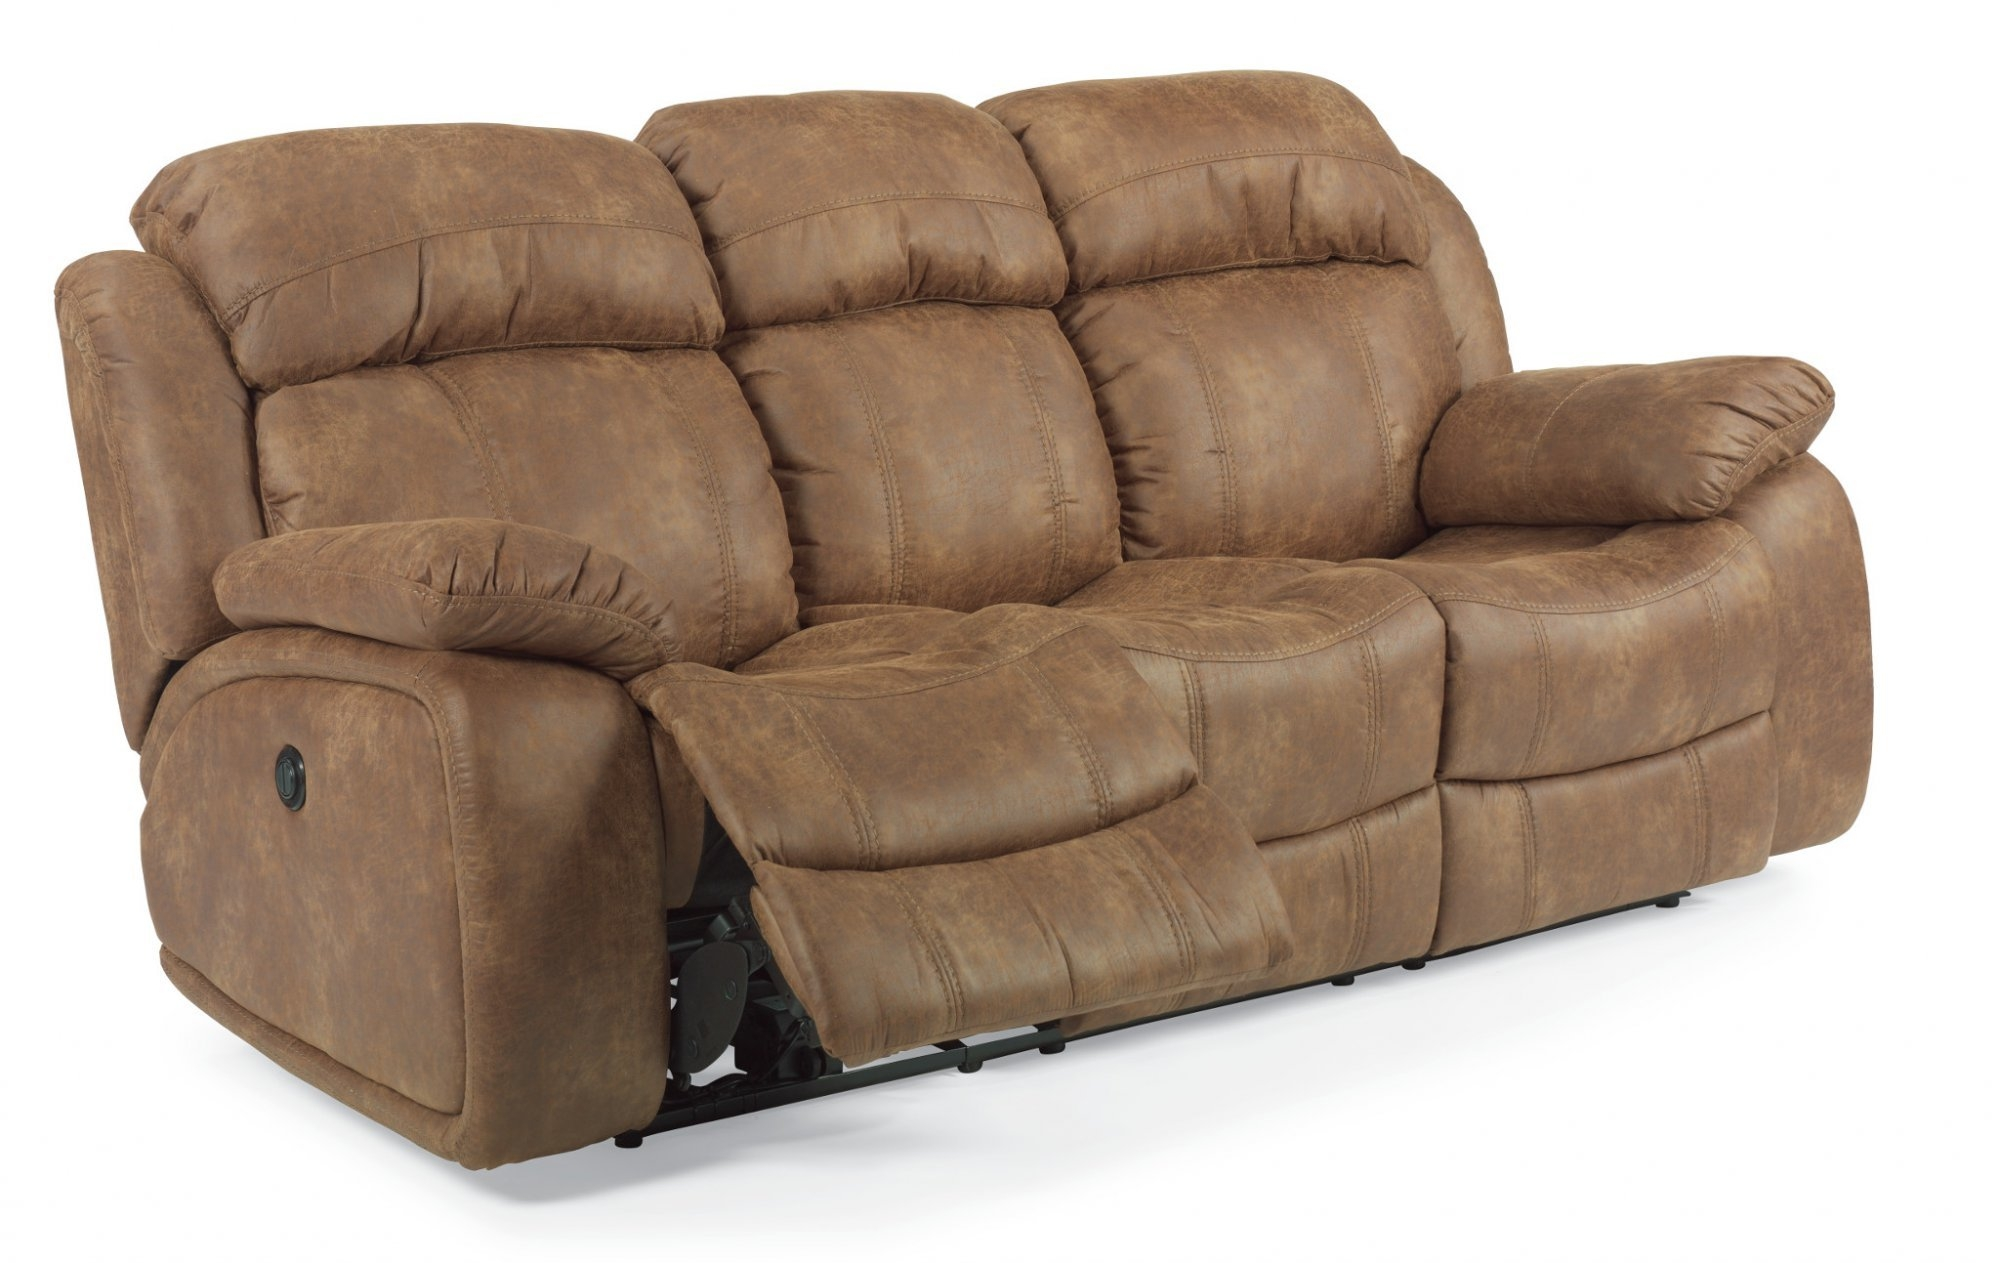 Furniture Nice Interior Furniture Design Robert Michaels Regarding Down Feather Sectional Sofa (Image 12 of 15)